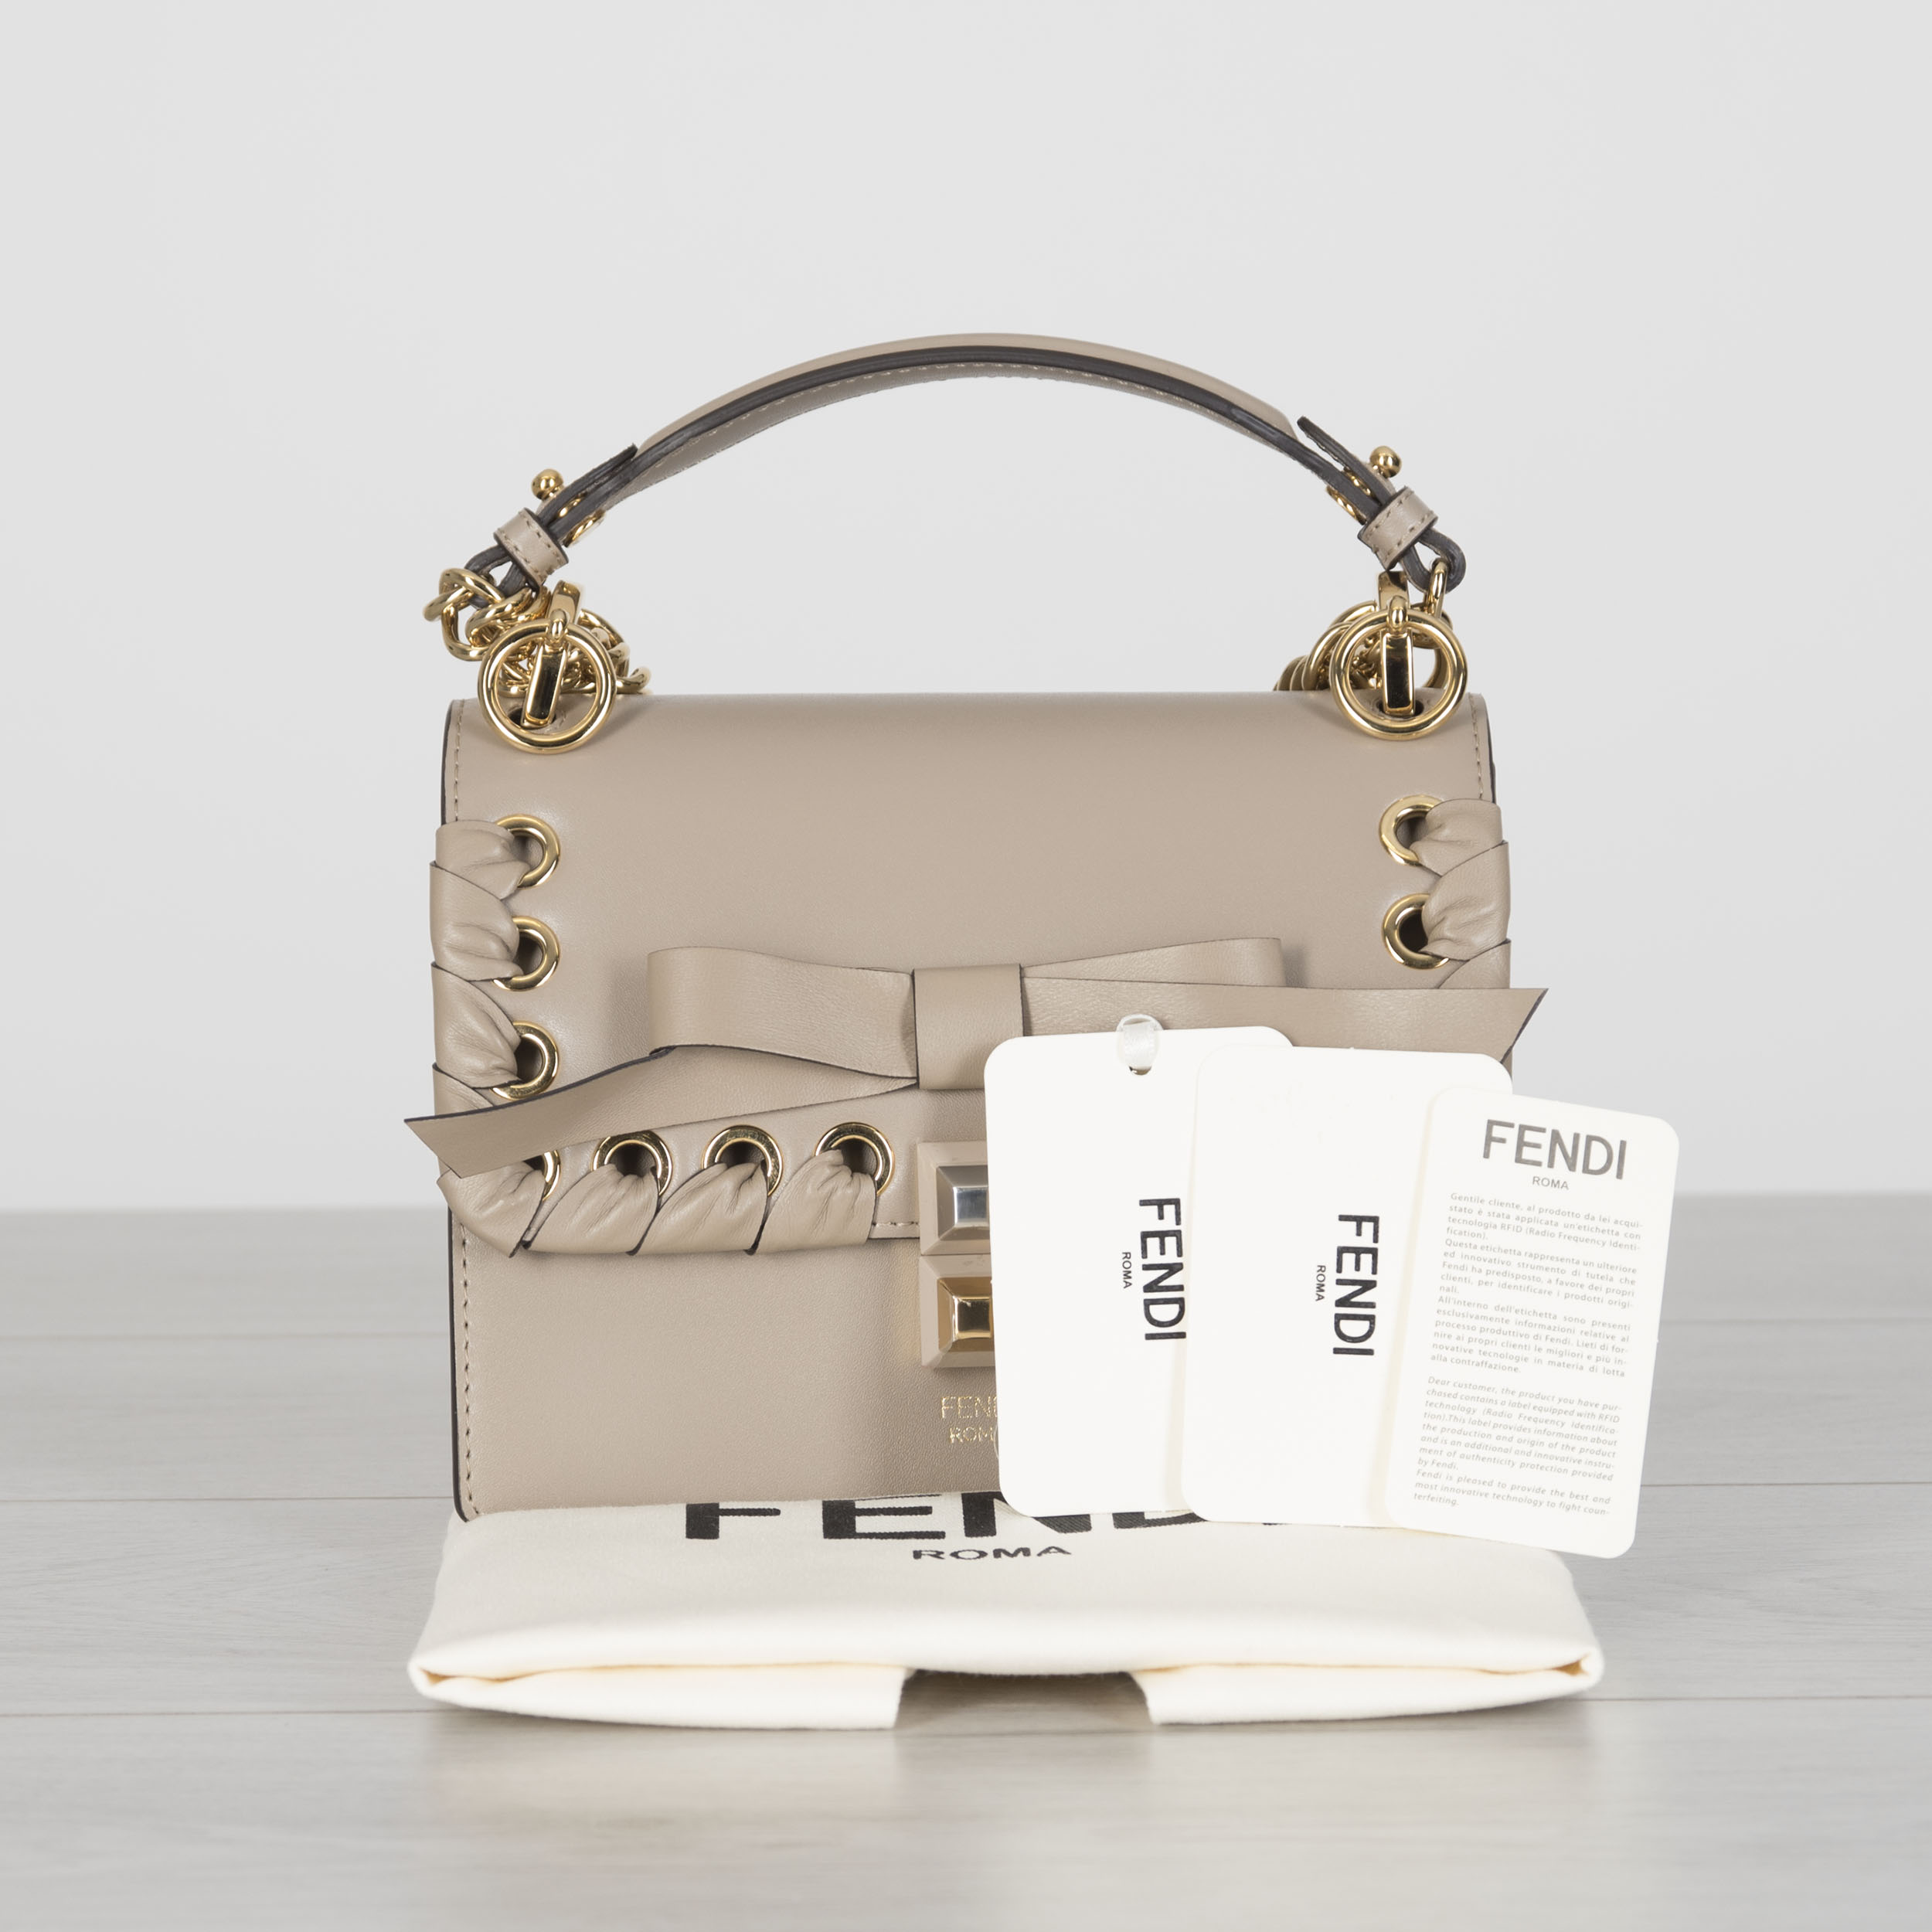 86e0acfccb34 Details about FENDI 2390  Mini Kan I Bag In Dove Grey Leather With Woven  Bow Detail